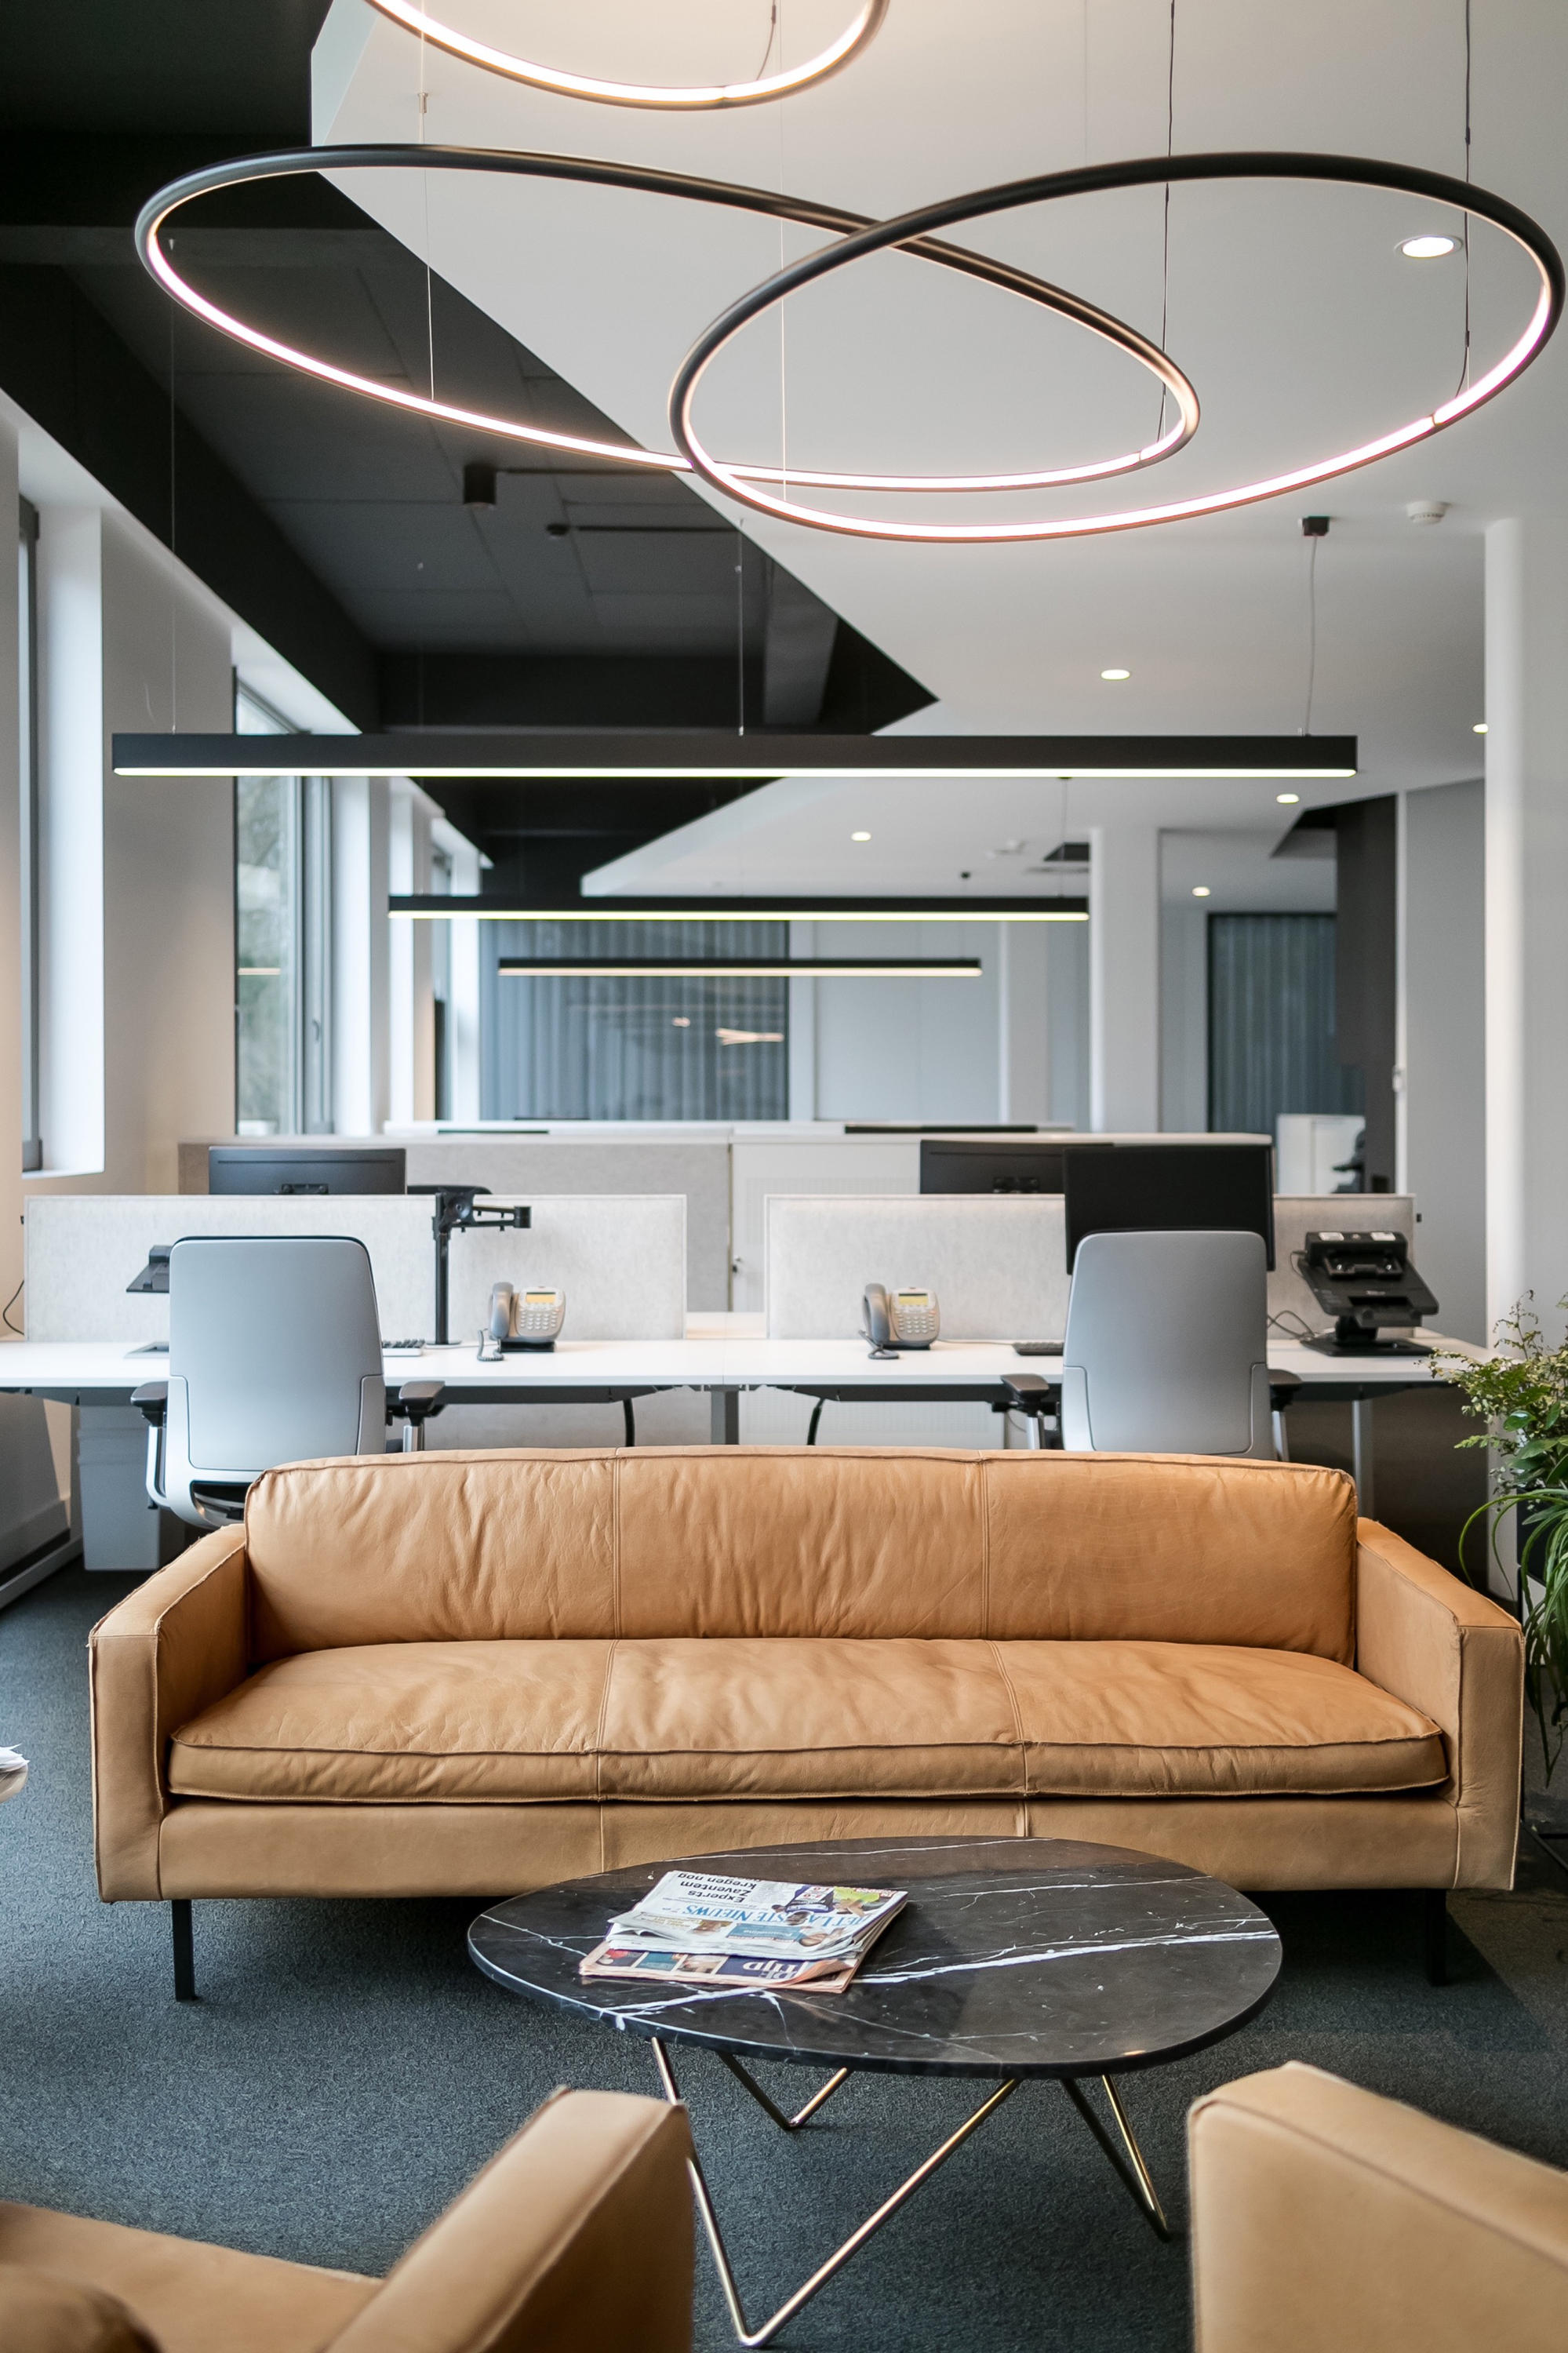 Hoola Suspended Lights From Tossb Architonic